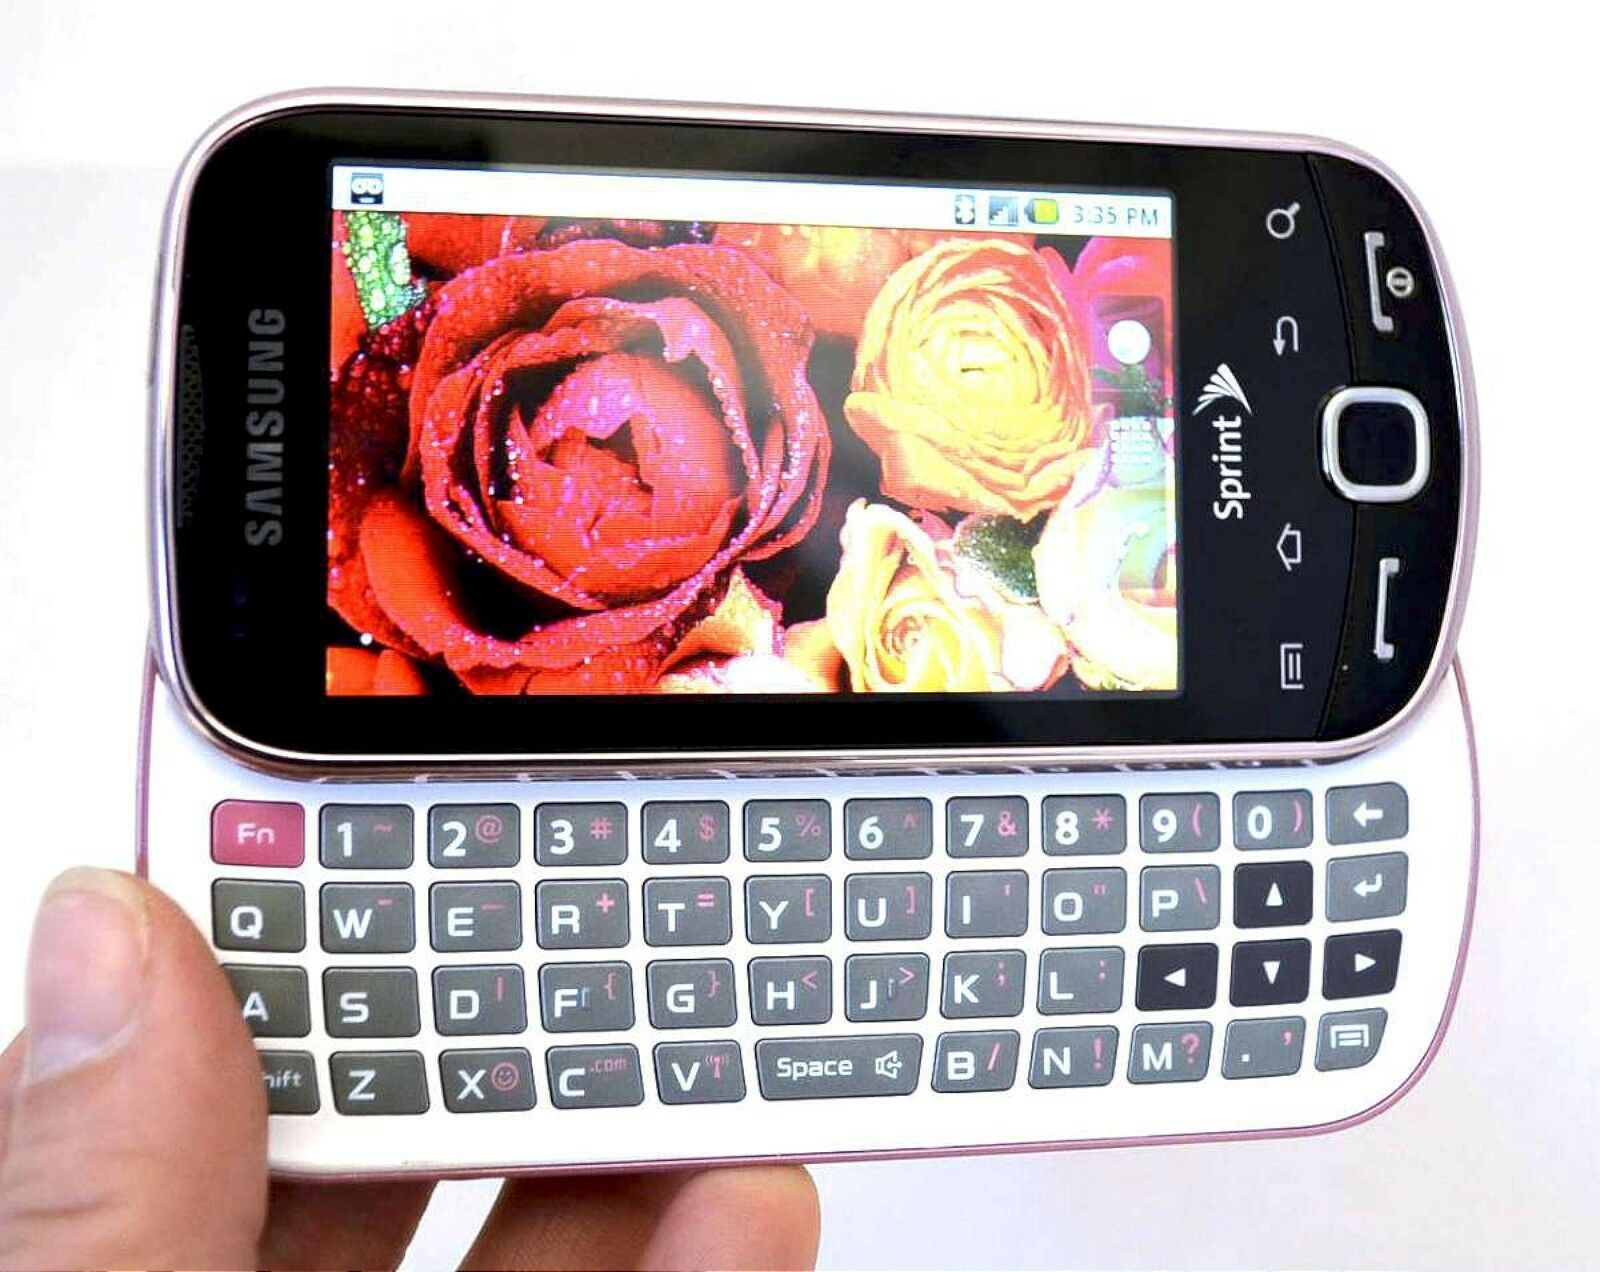 Samsung SPH-M910 INTERCEPT Sprint Android Phone PINK Wireless cell  Smartphone